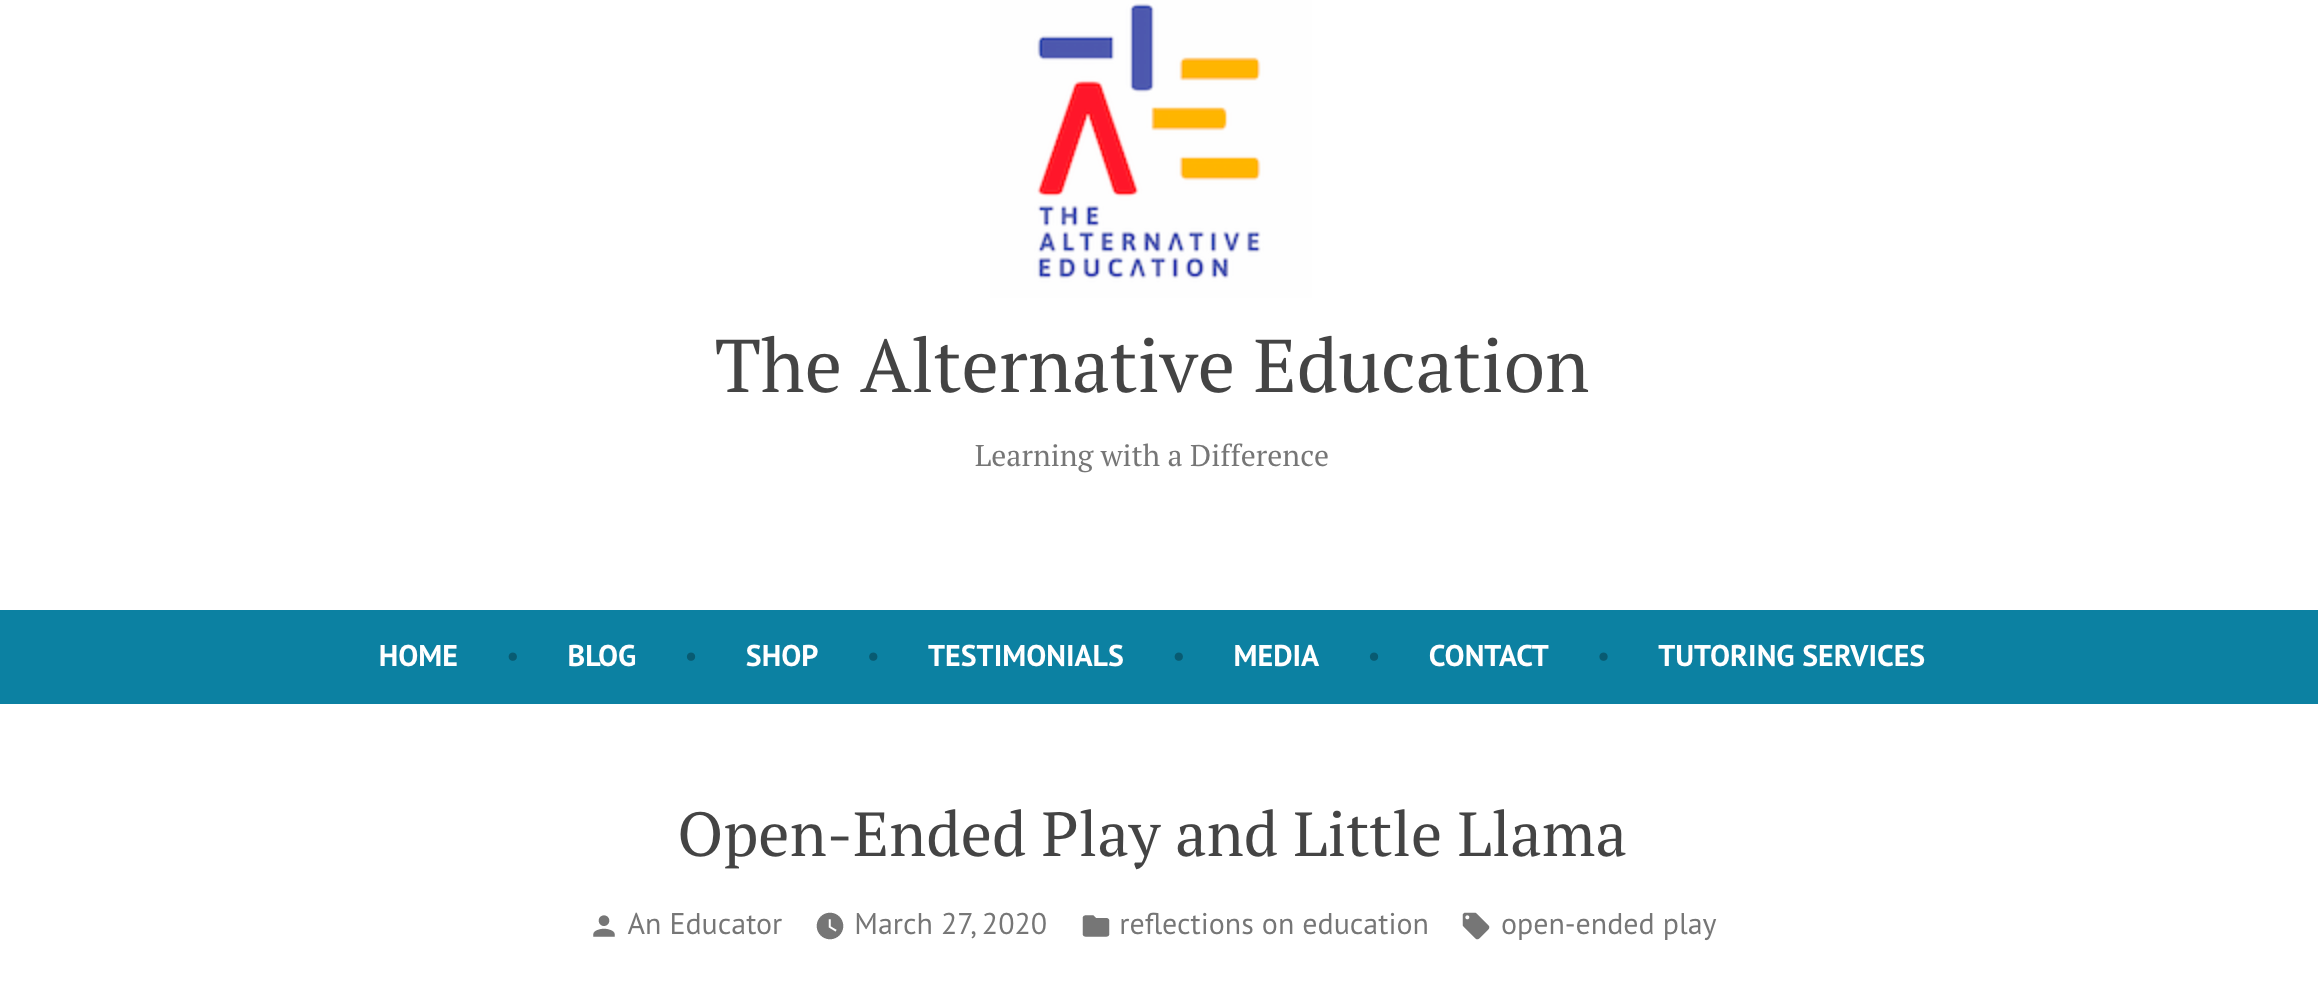 A Senior Educational Therapist shares about Open-ended Play with toys from Little Llama!